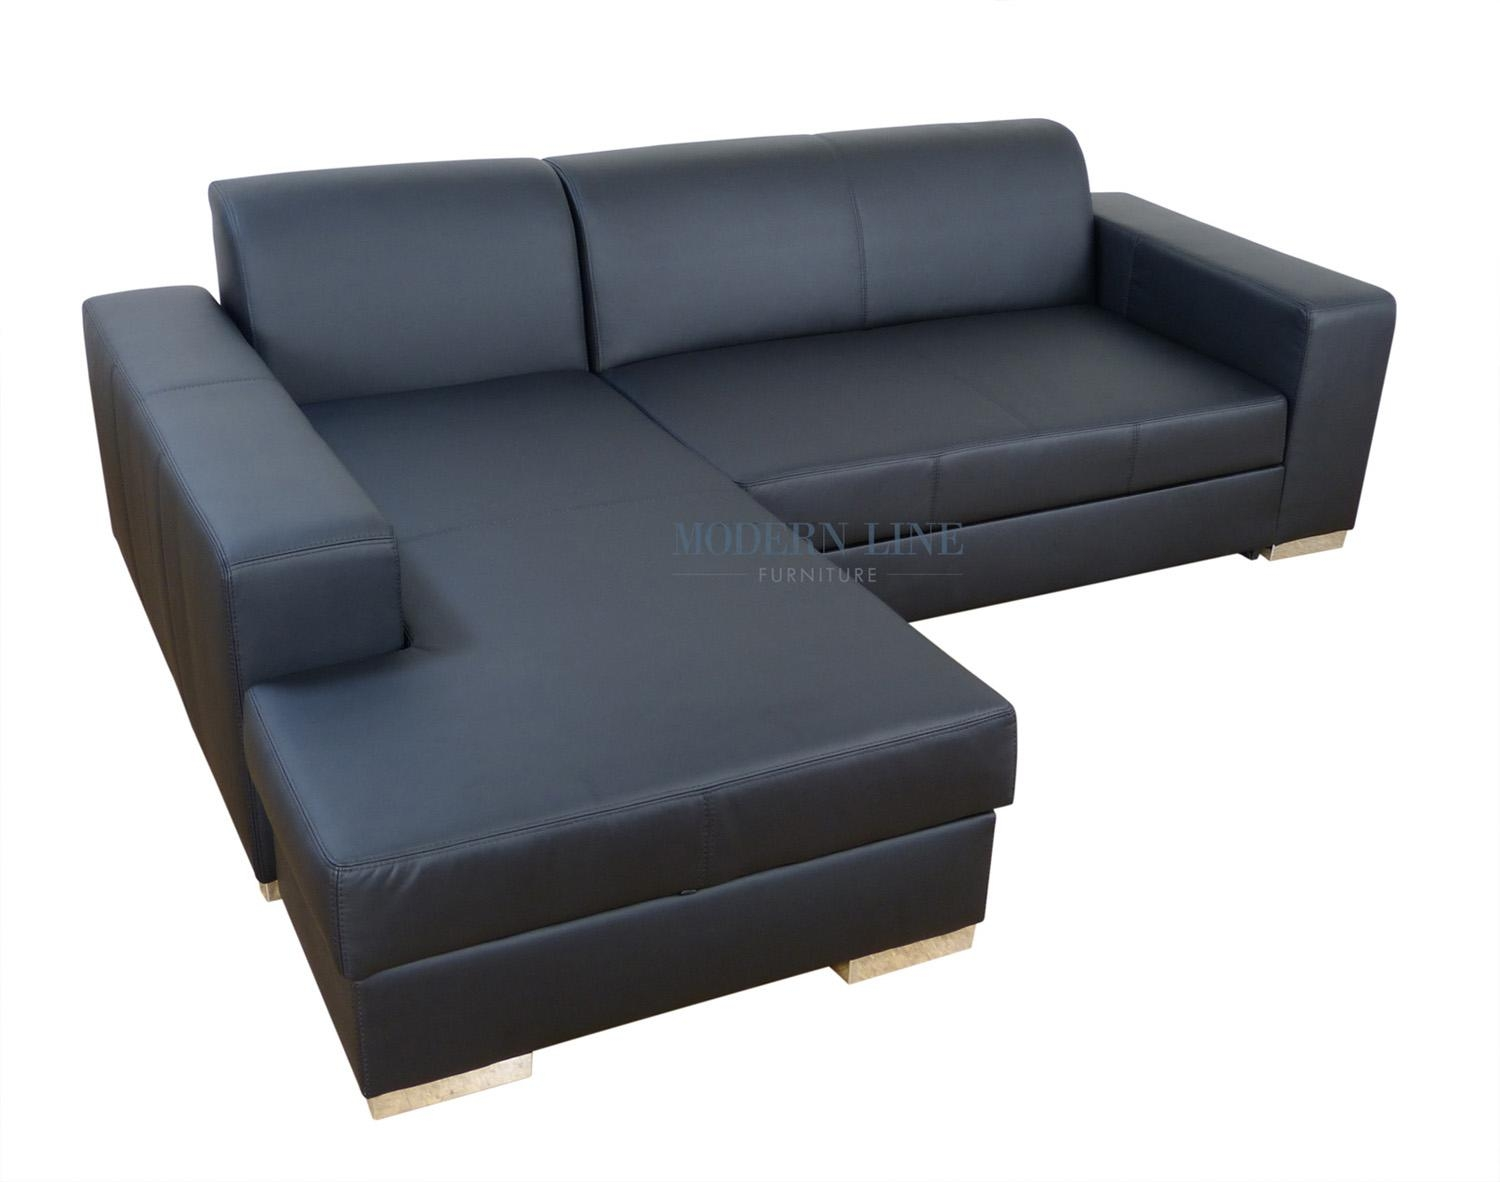 Modern Line Furniture – Commercial Furniture – Custom Made Intended For Sectional Sofa With Storage (Image 9 of 20)